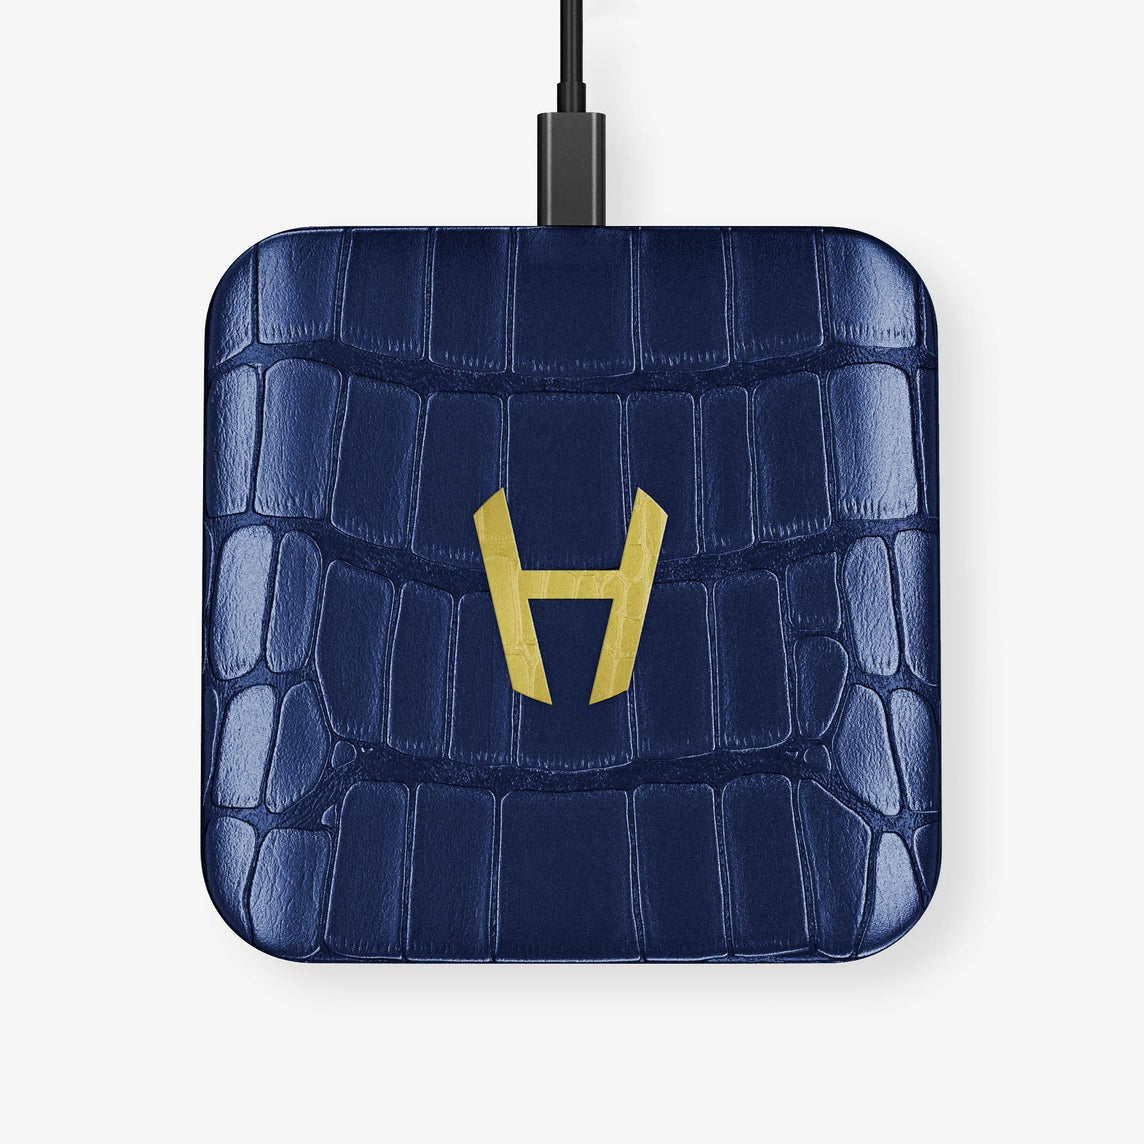 Alligator Hadoro Wireless Charging Pad | Navy Blue - Yellow Gold without-personalization